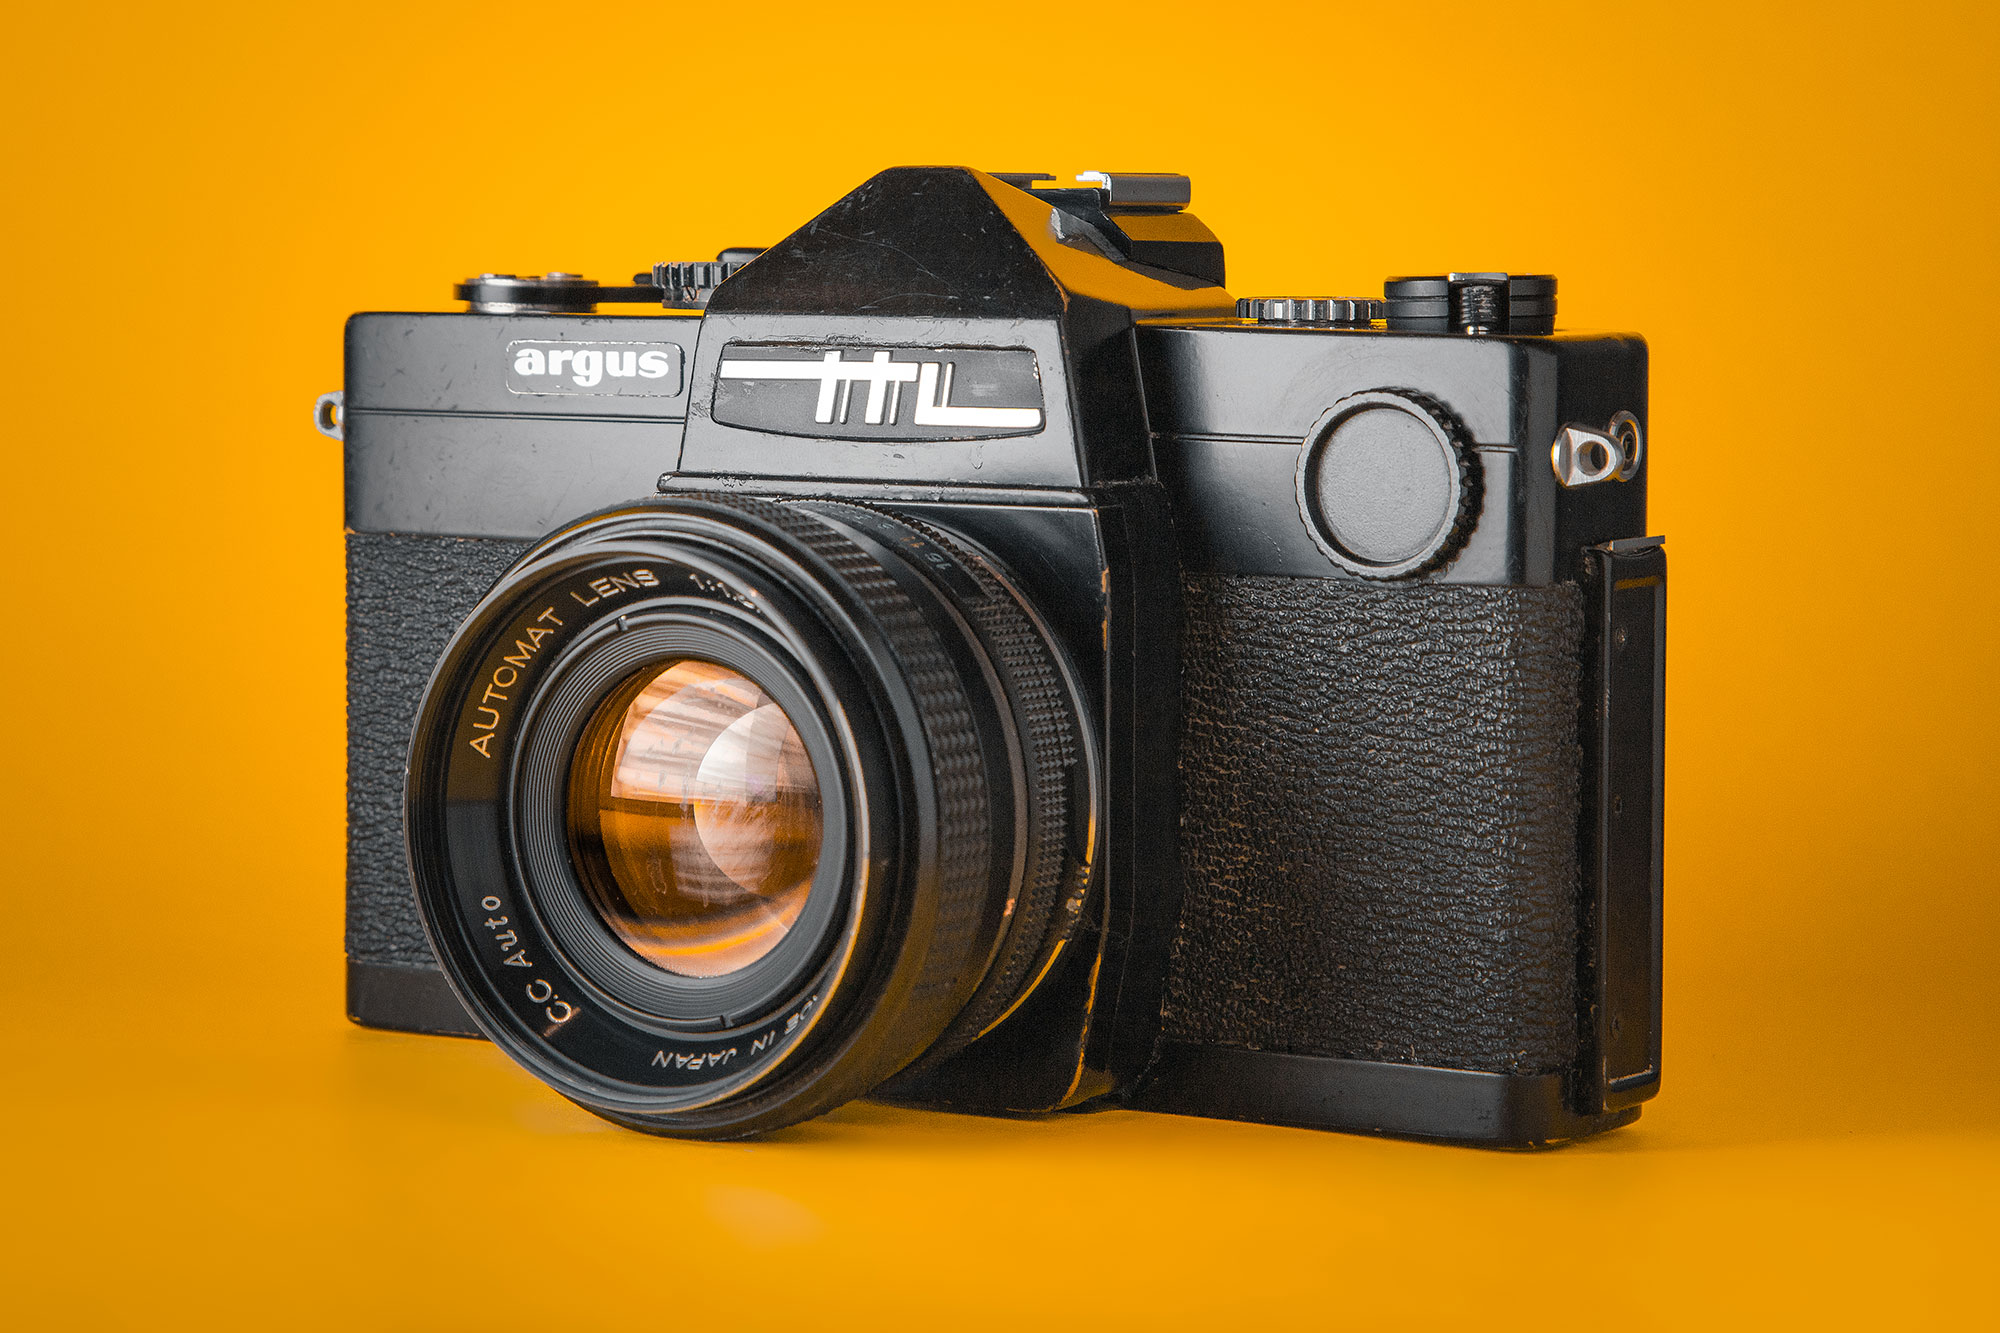 Rediscovering my passion for photography - Fuji X Passion